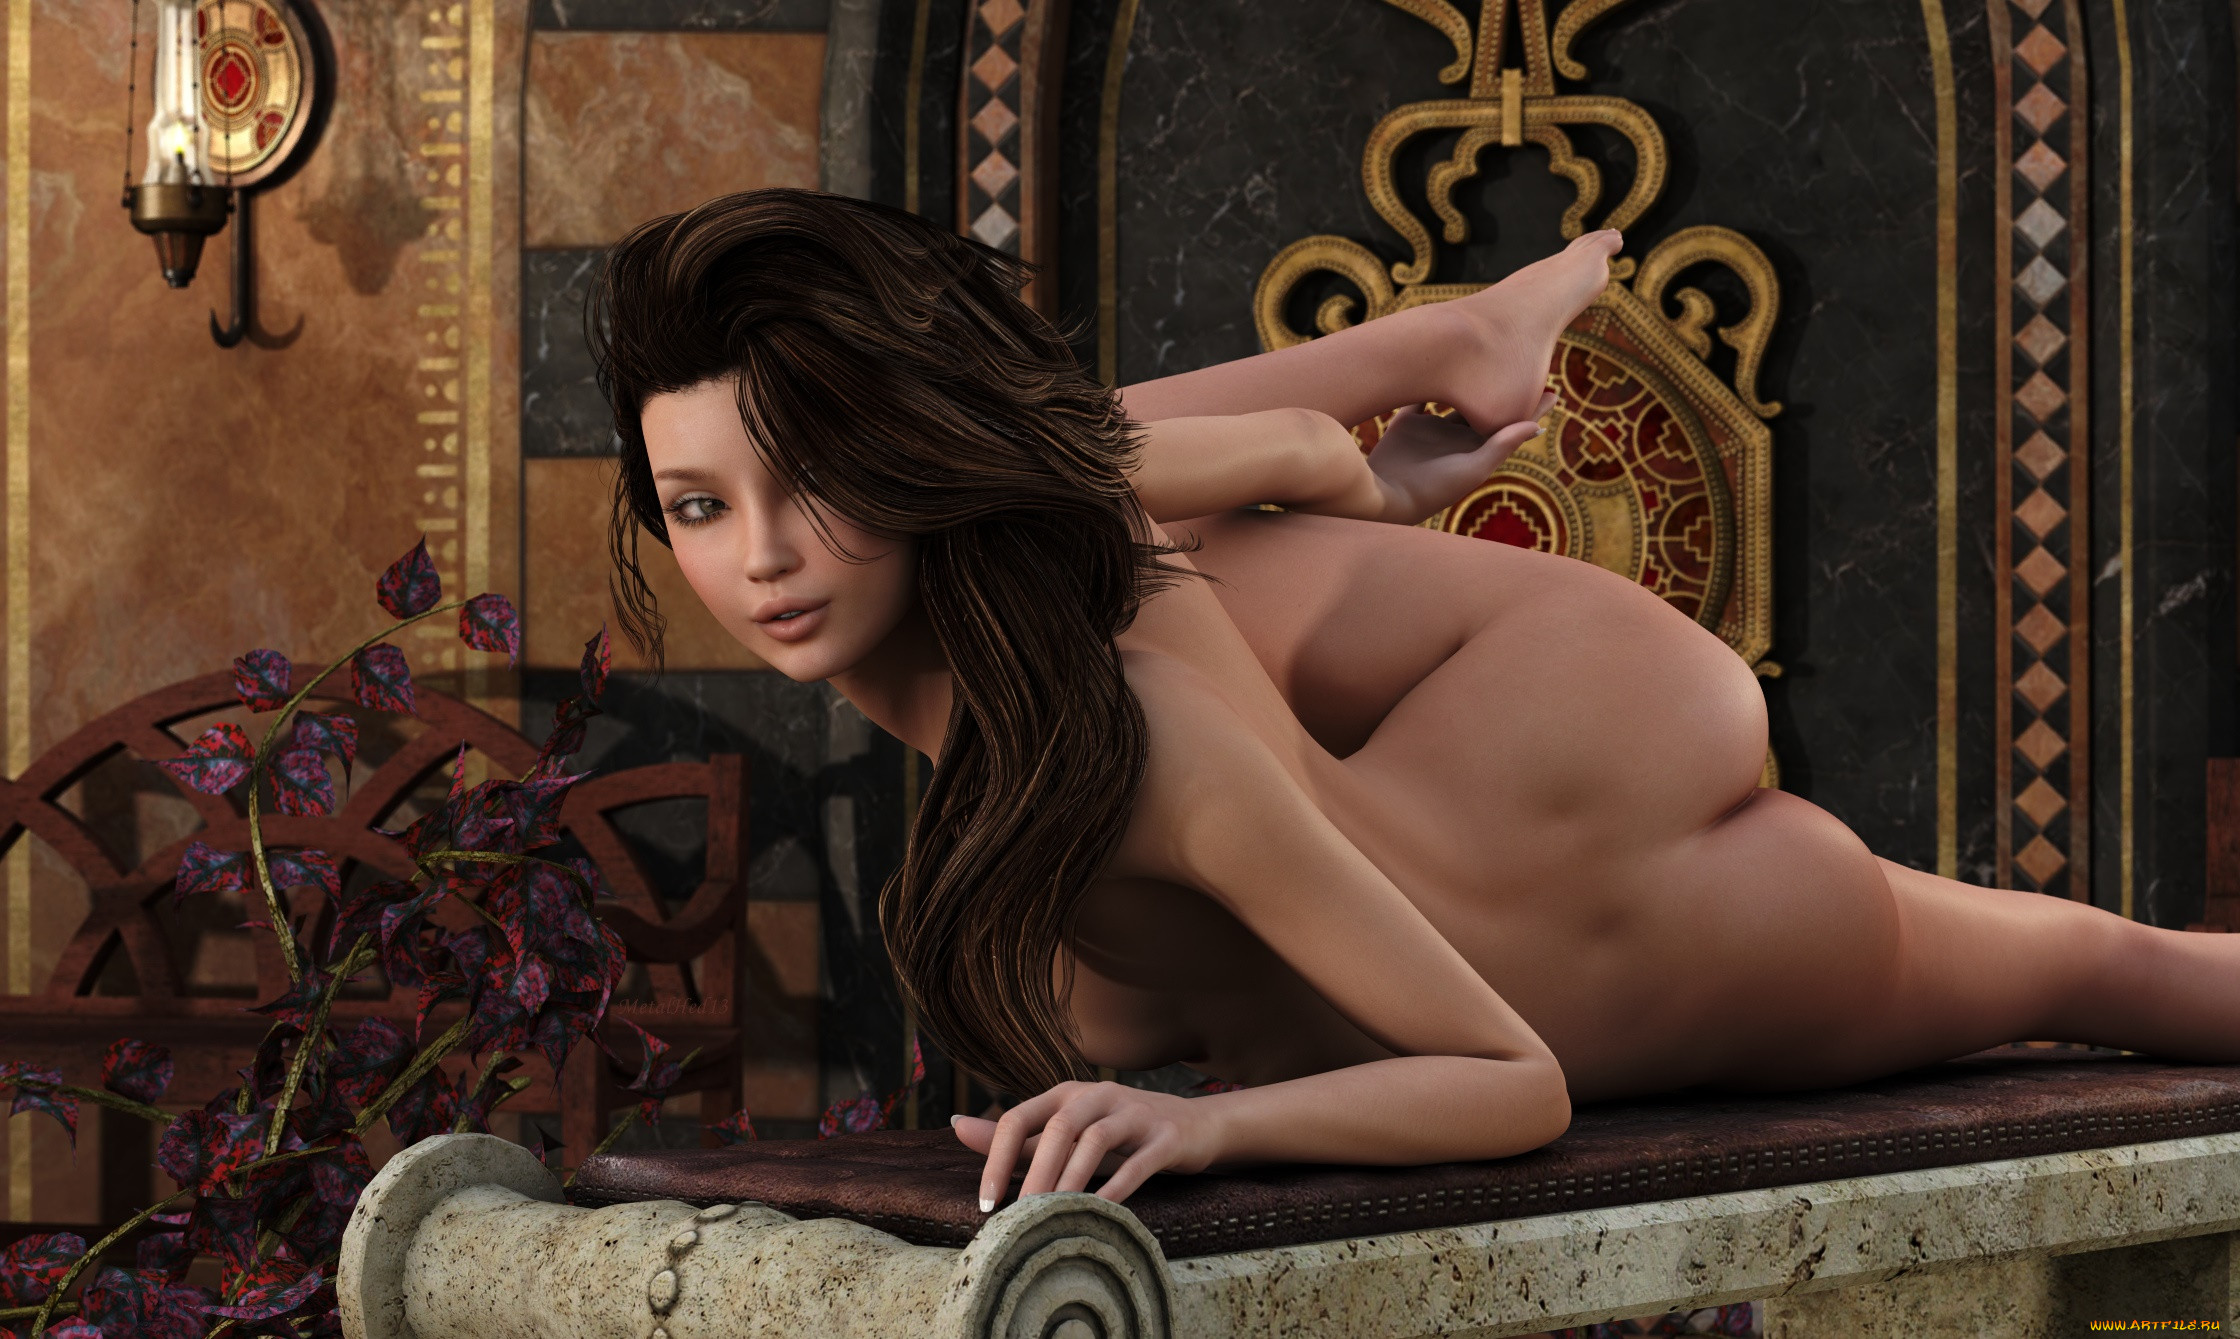 Hd nude wallpaper fantasy girl, pin up panties porn